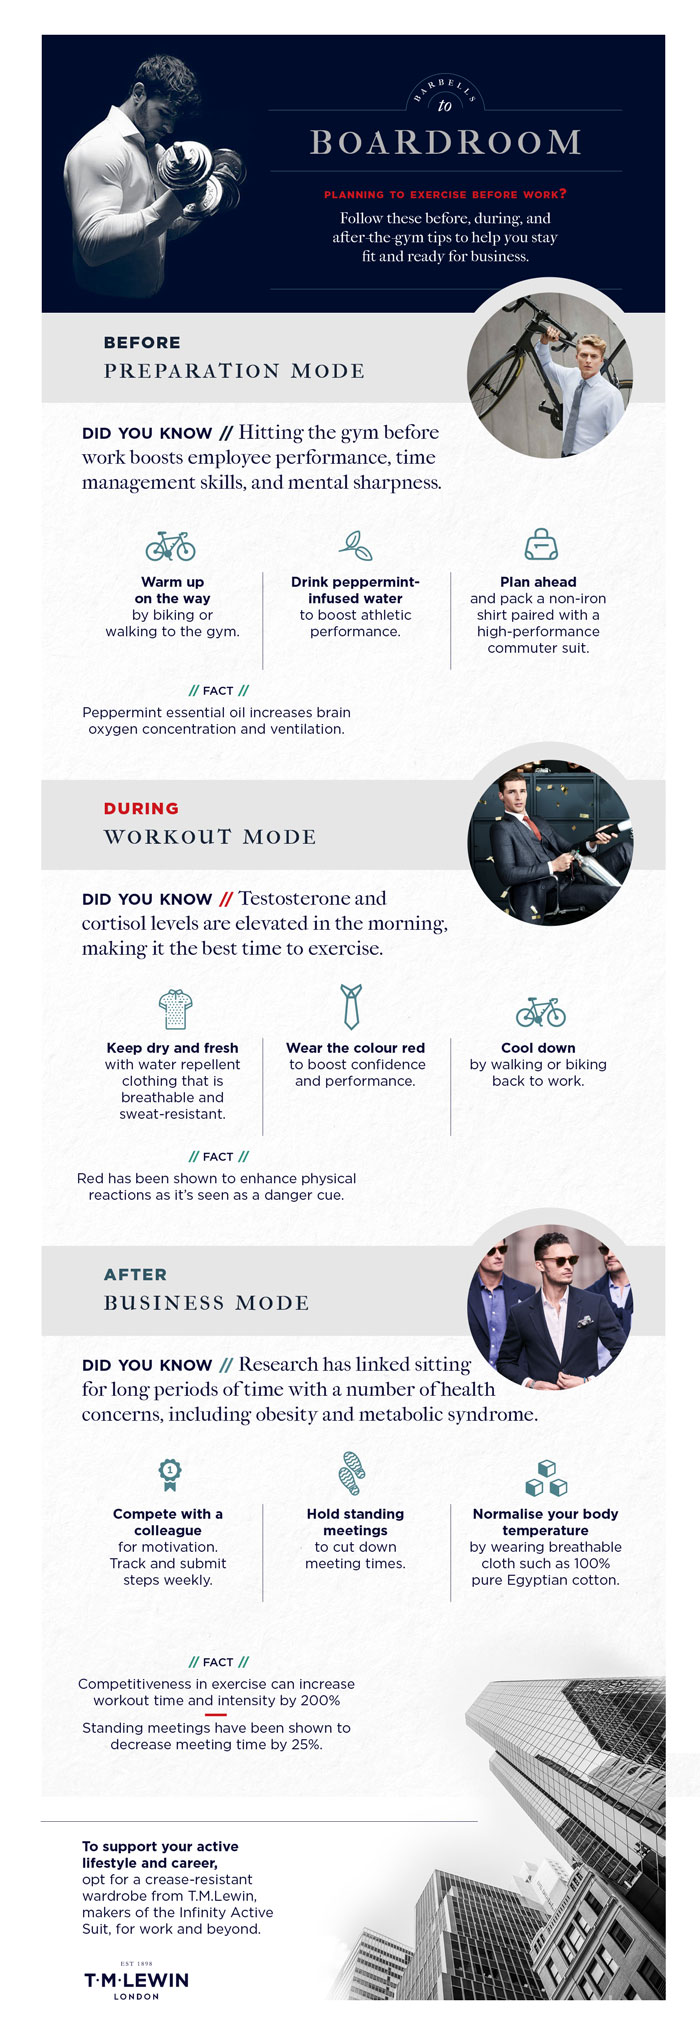 Barbells To Boardroom [Infographic]